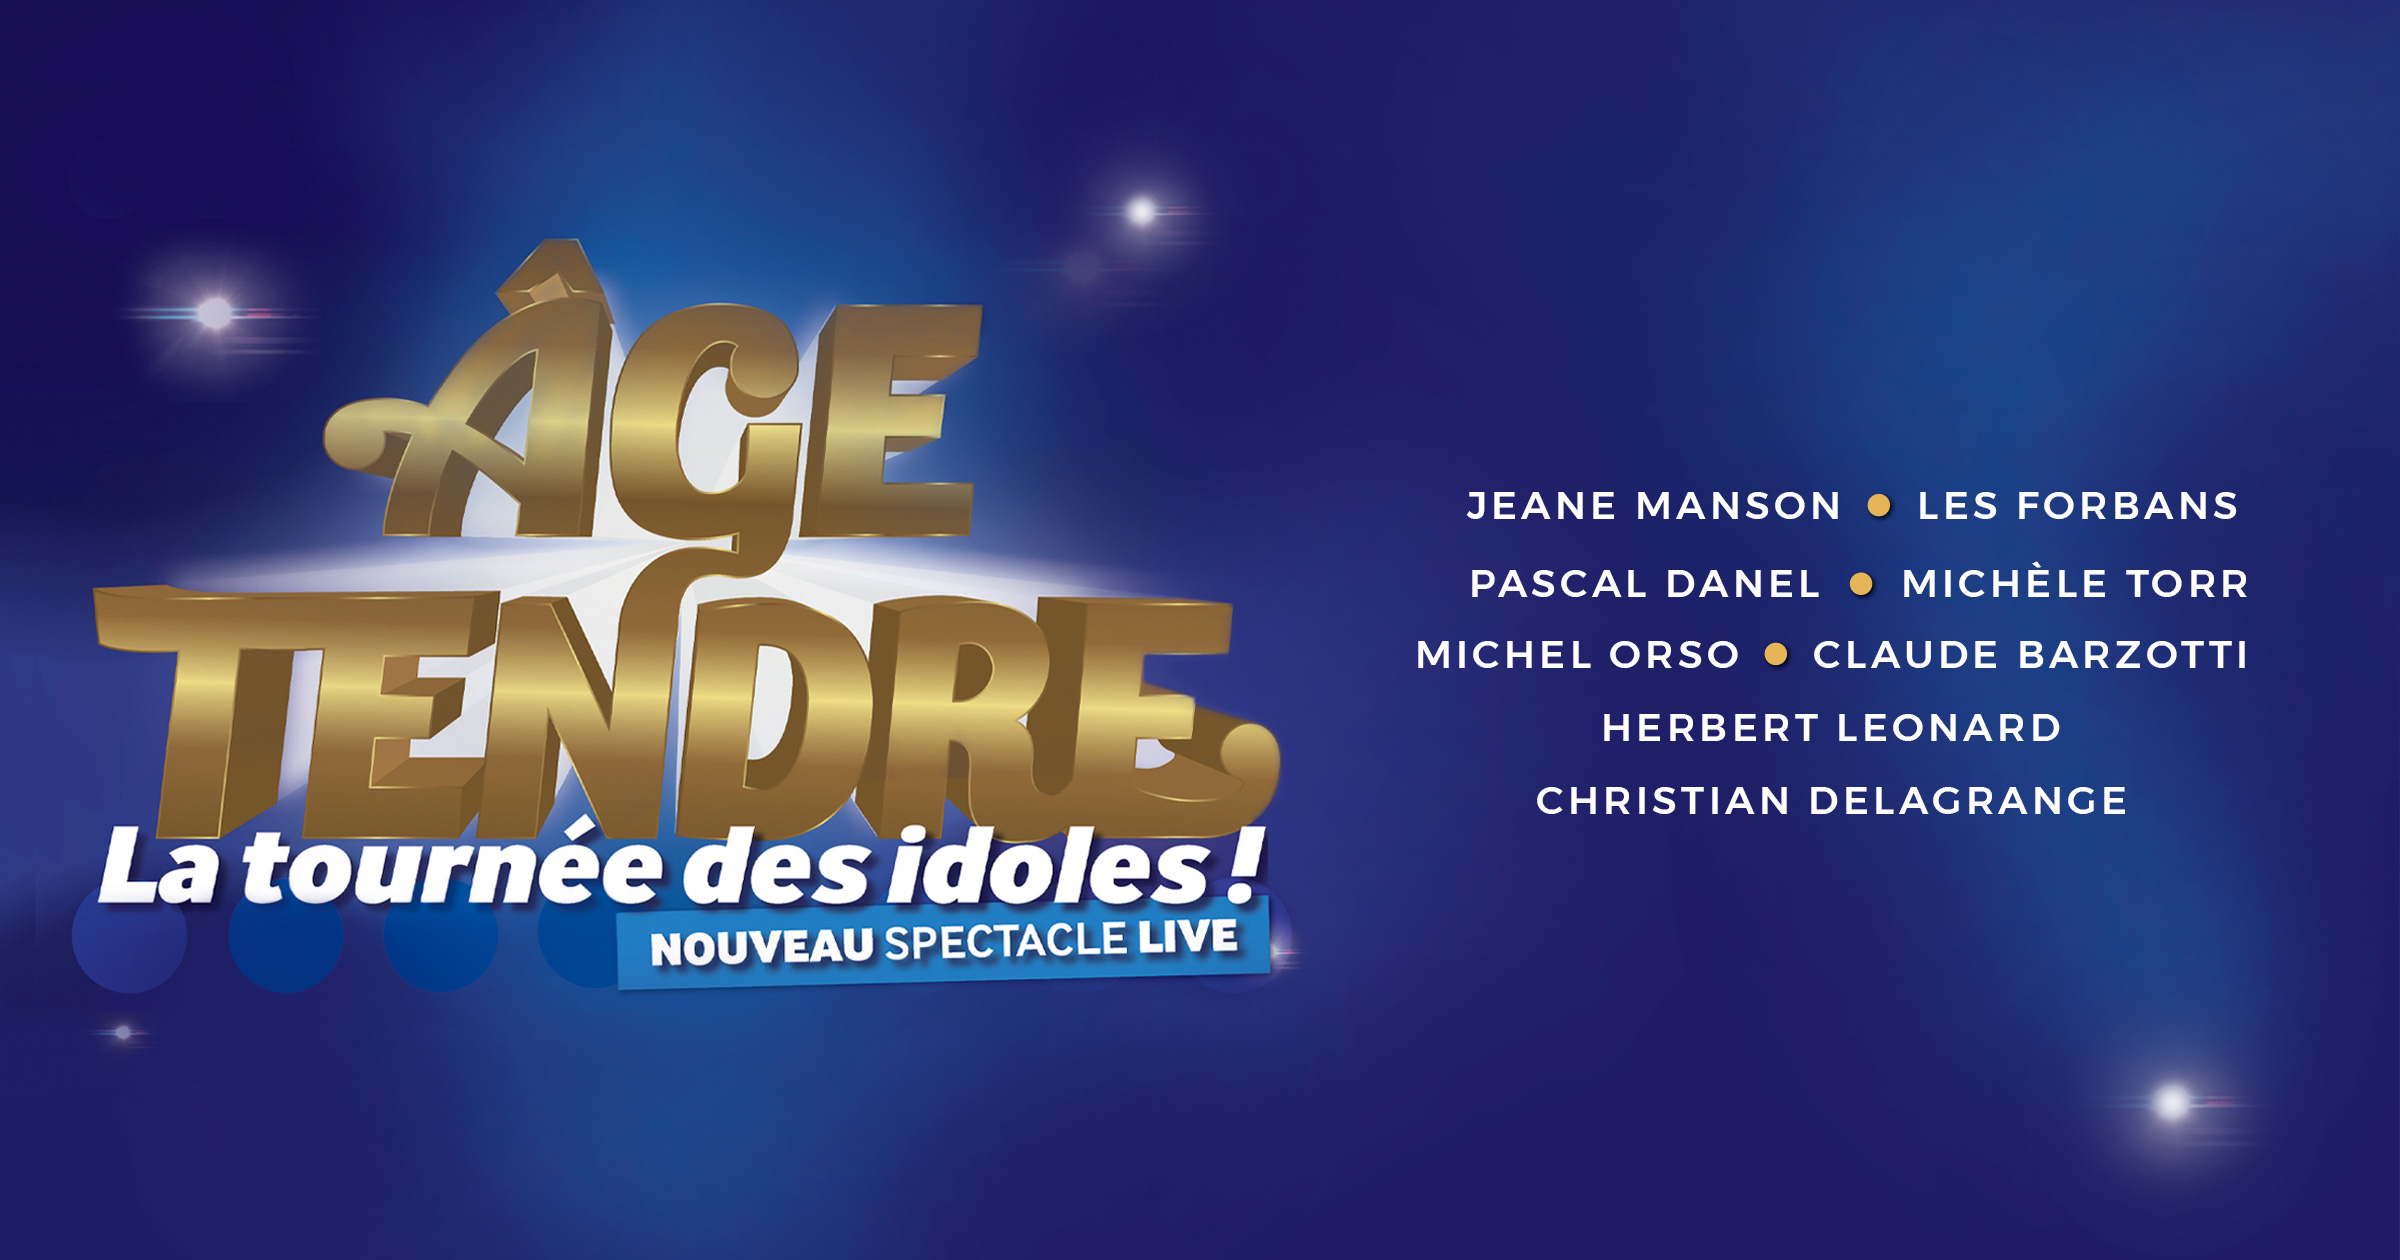 Age Tendre nouveau spectacle live cover